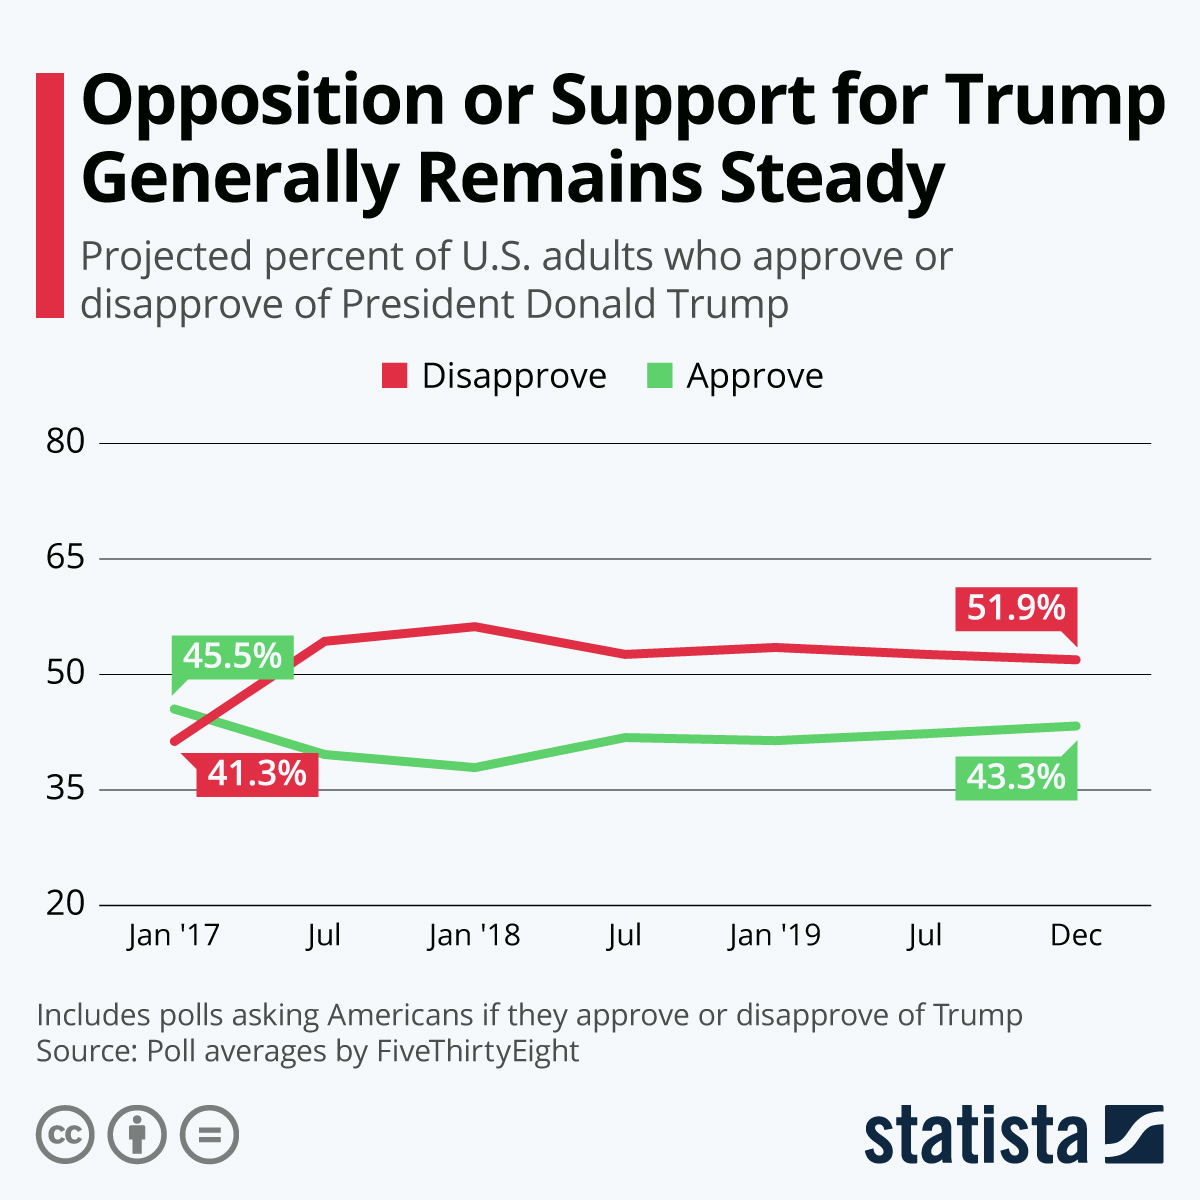 Support for Trump continues